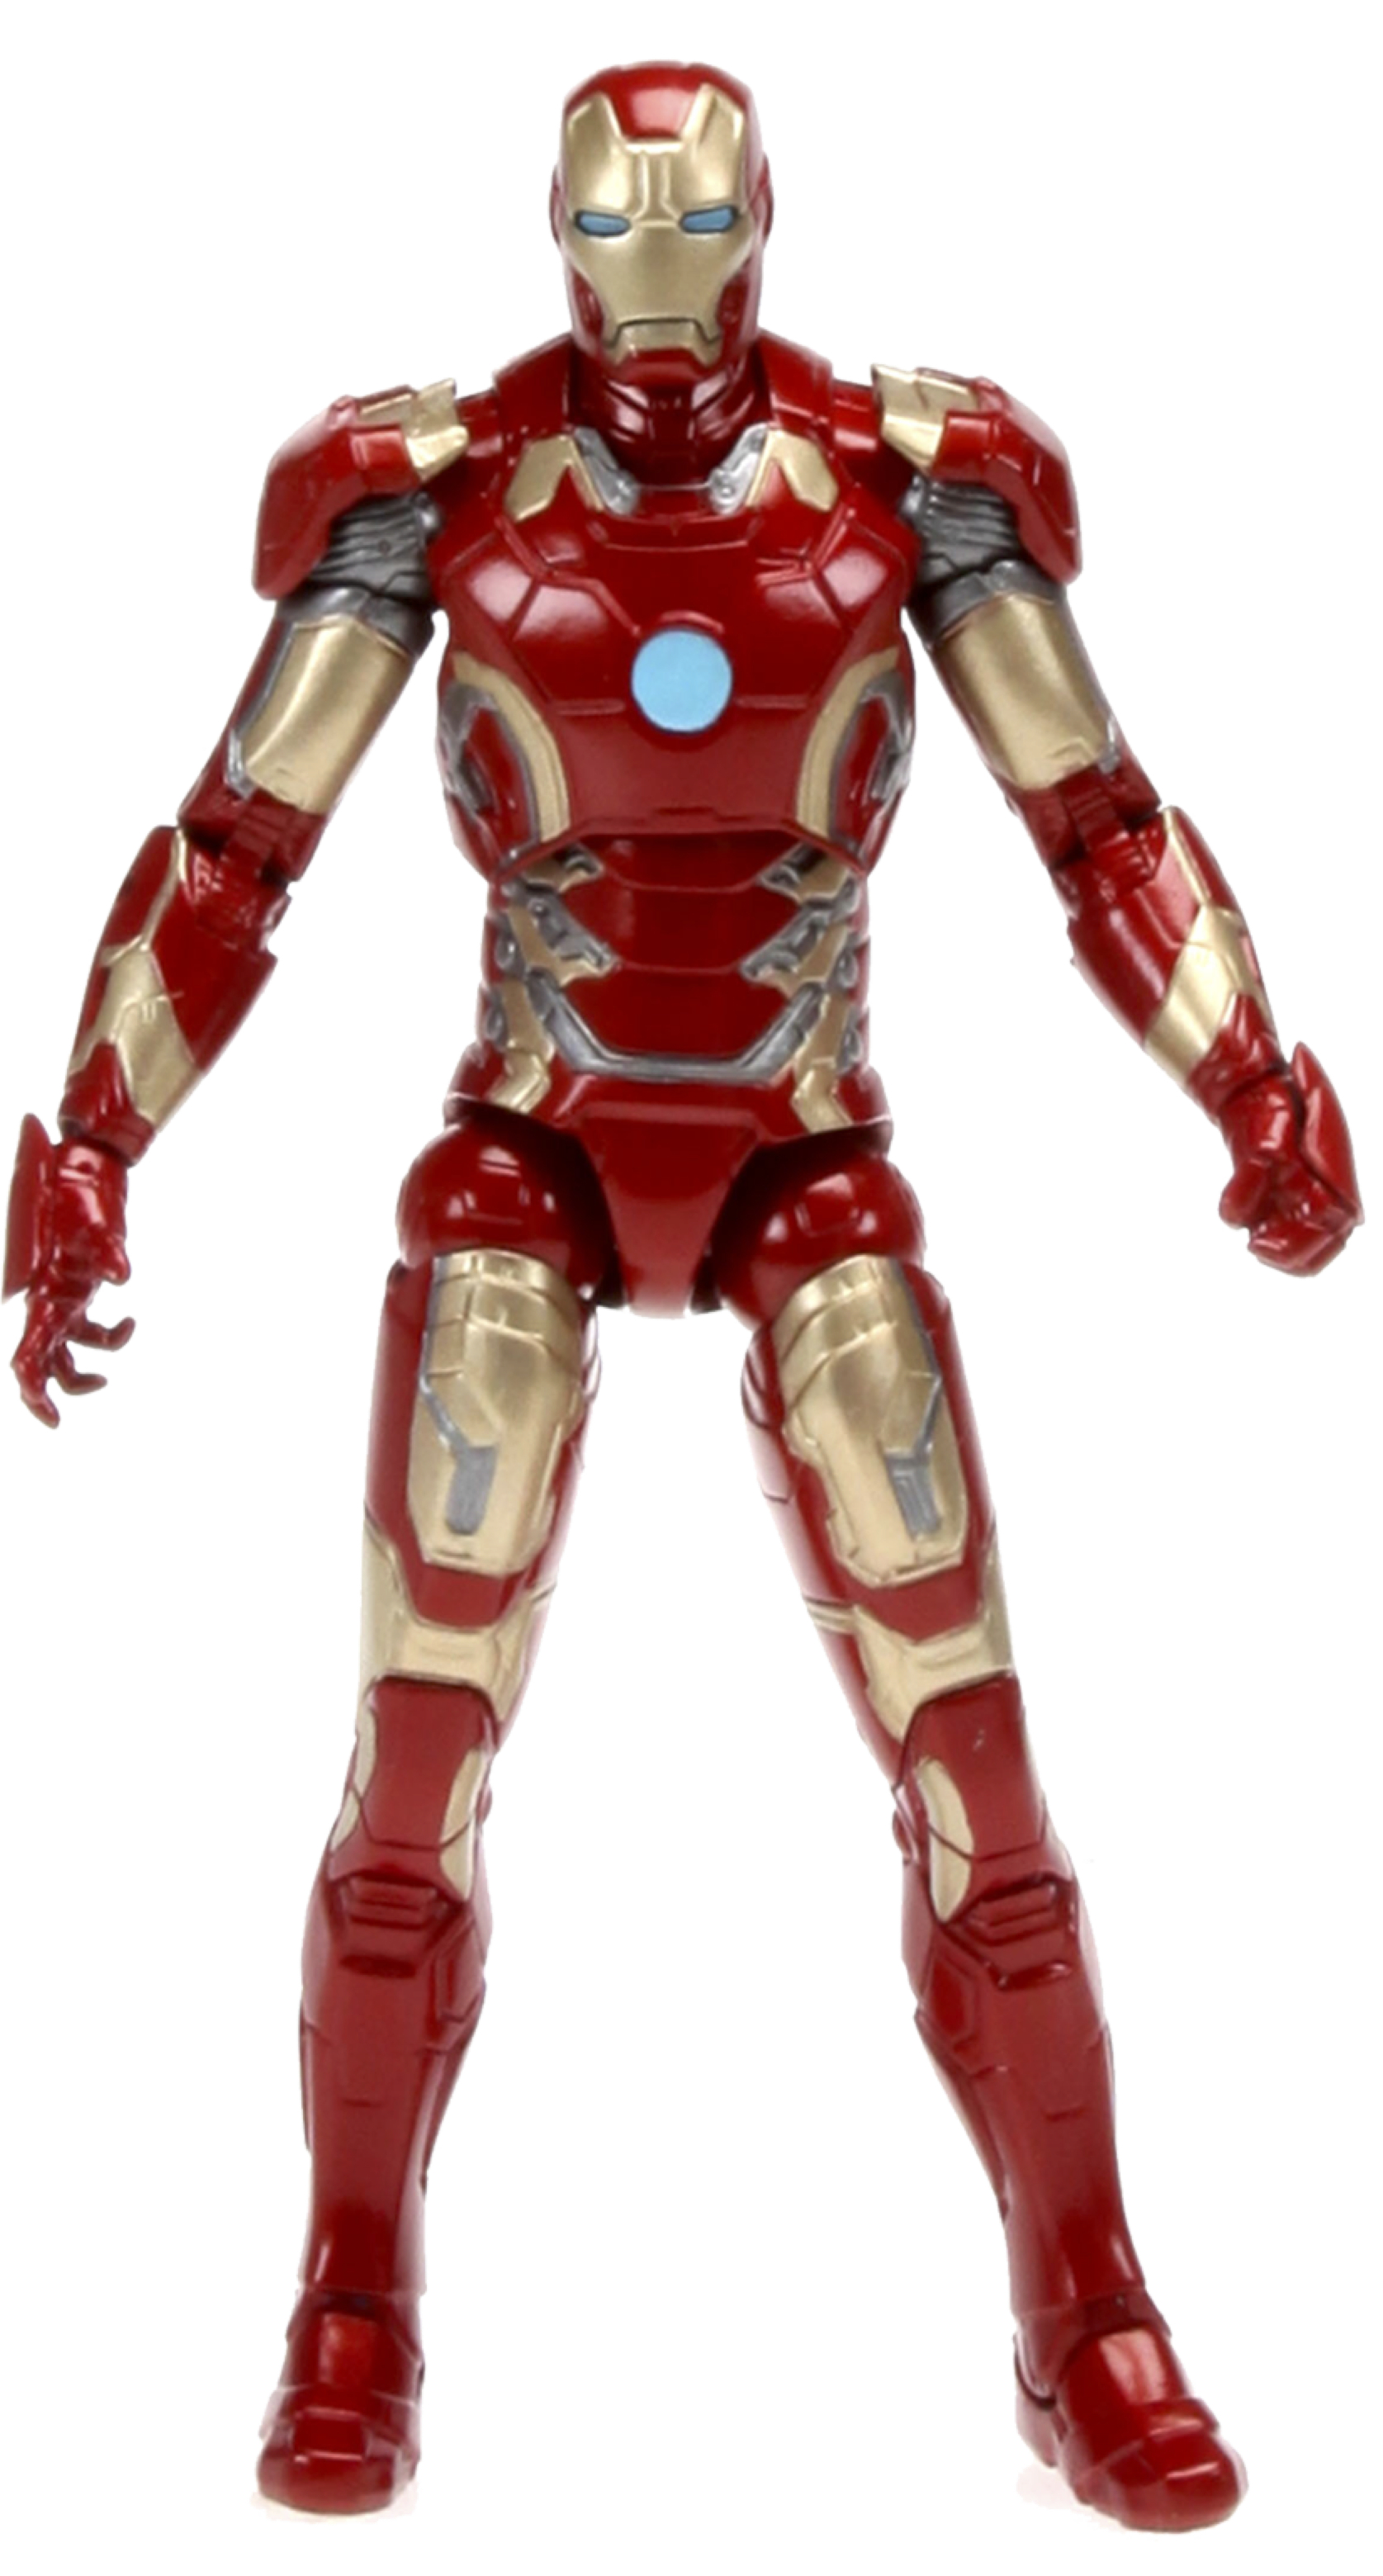 Toys From Hasbro : Toy fair new marvel toys from hasbro graphic policy